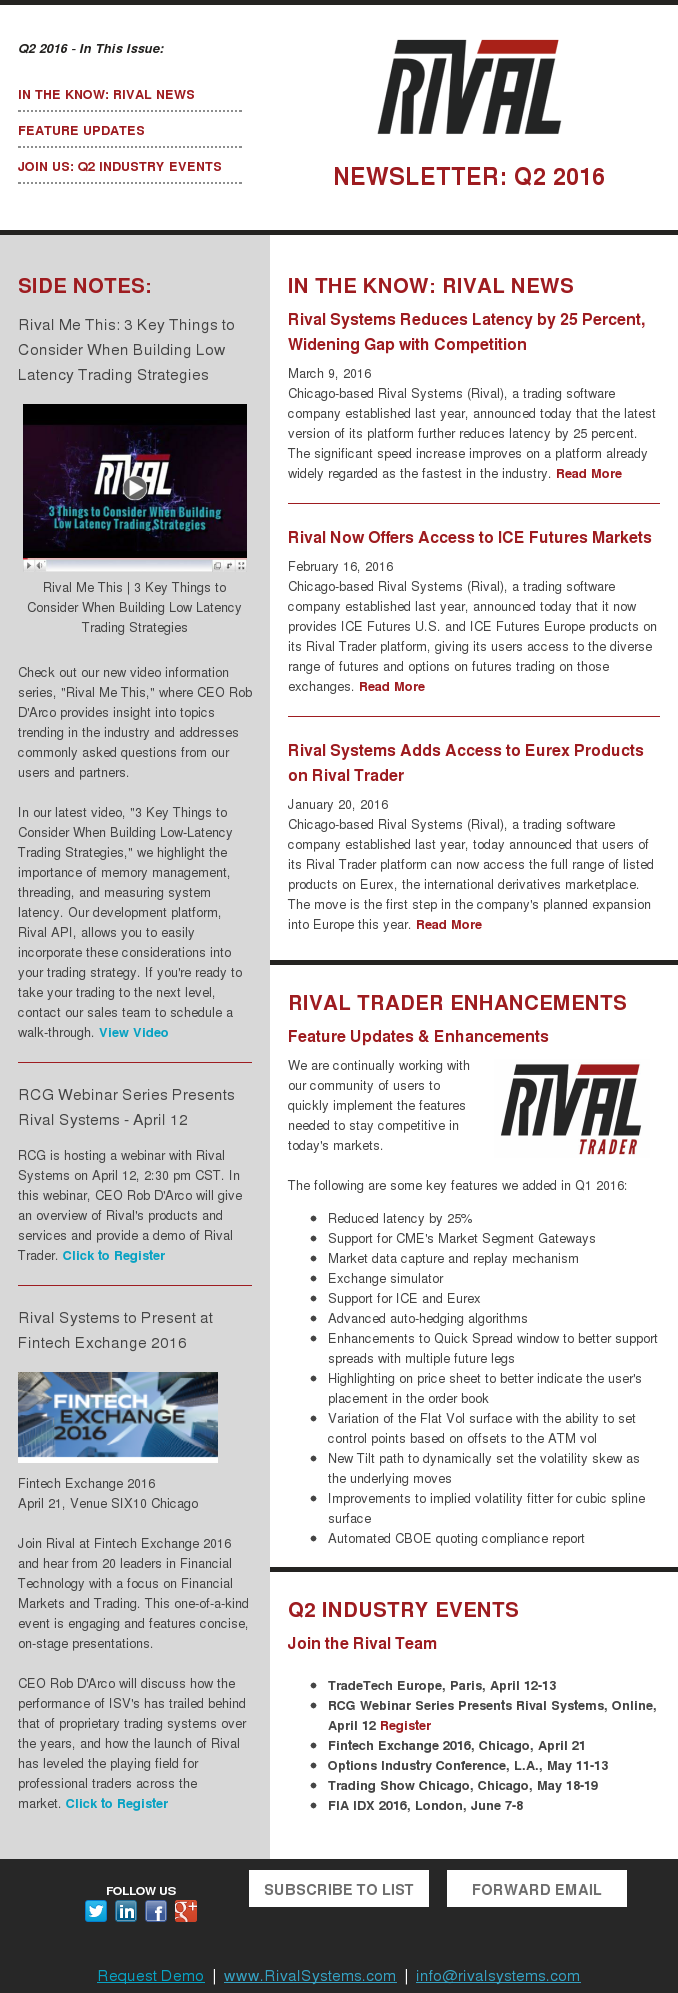 Rival Newsletter Q2 2016